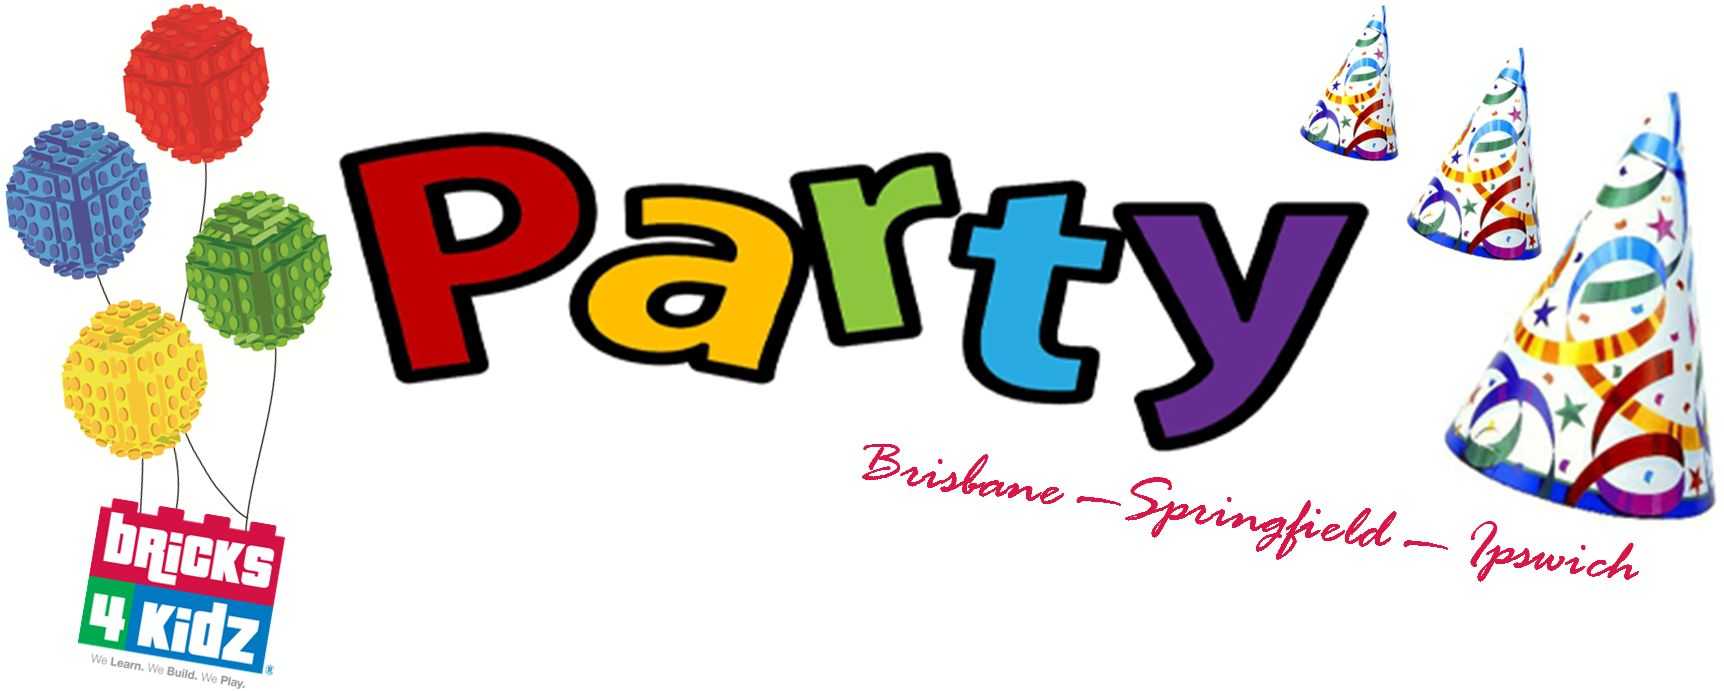 Kids Birthday Party @ Bricks 4 Kidz Centre Springfield or Mobile ...